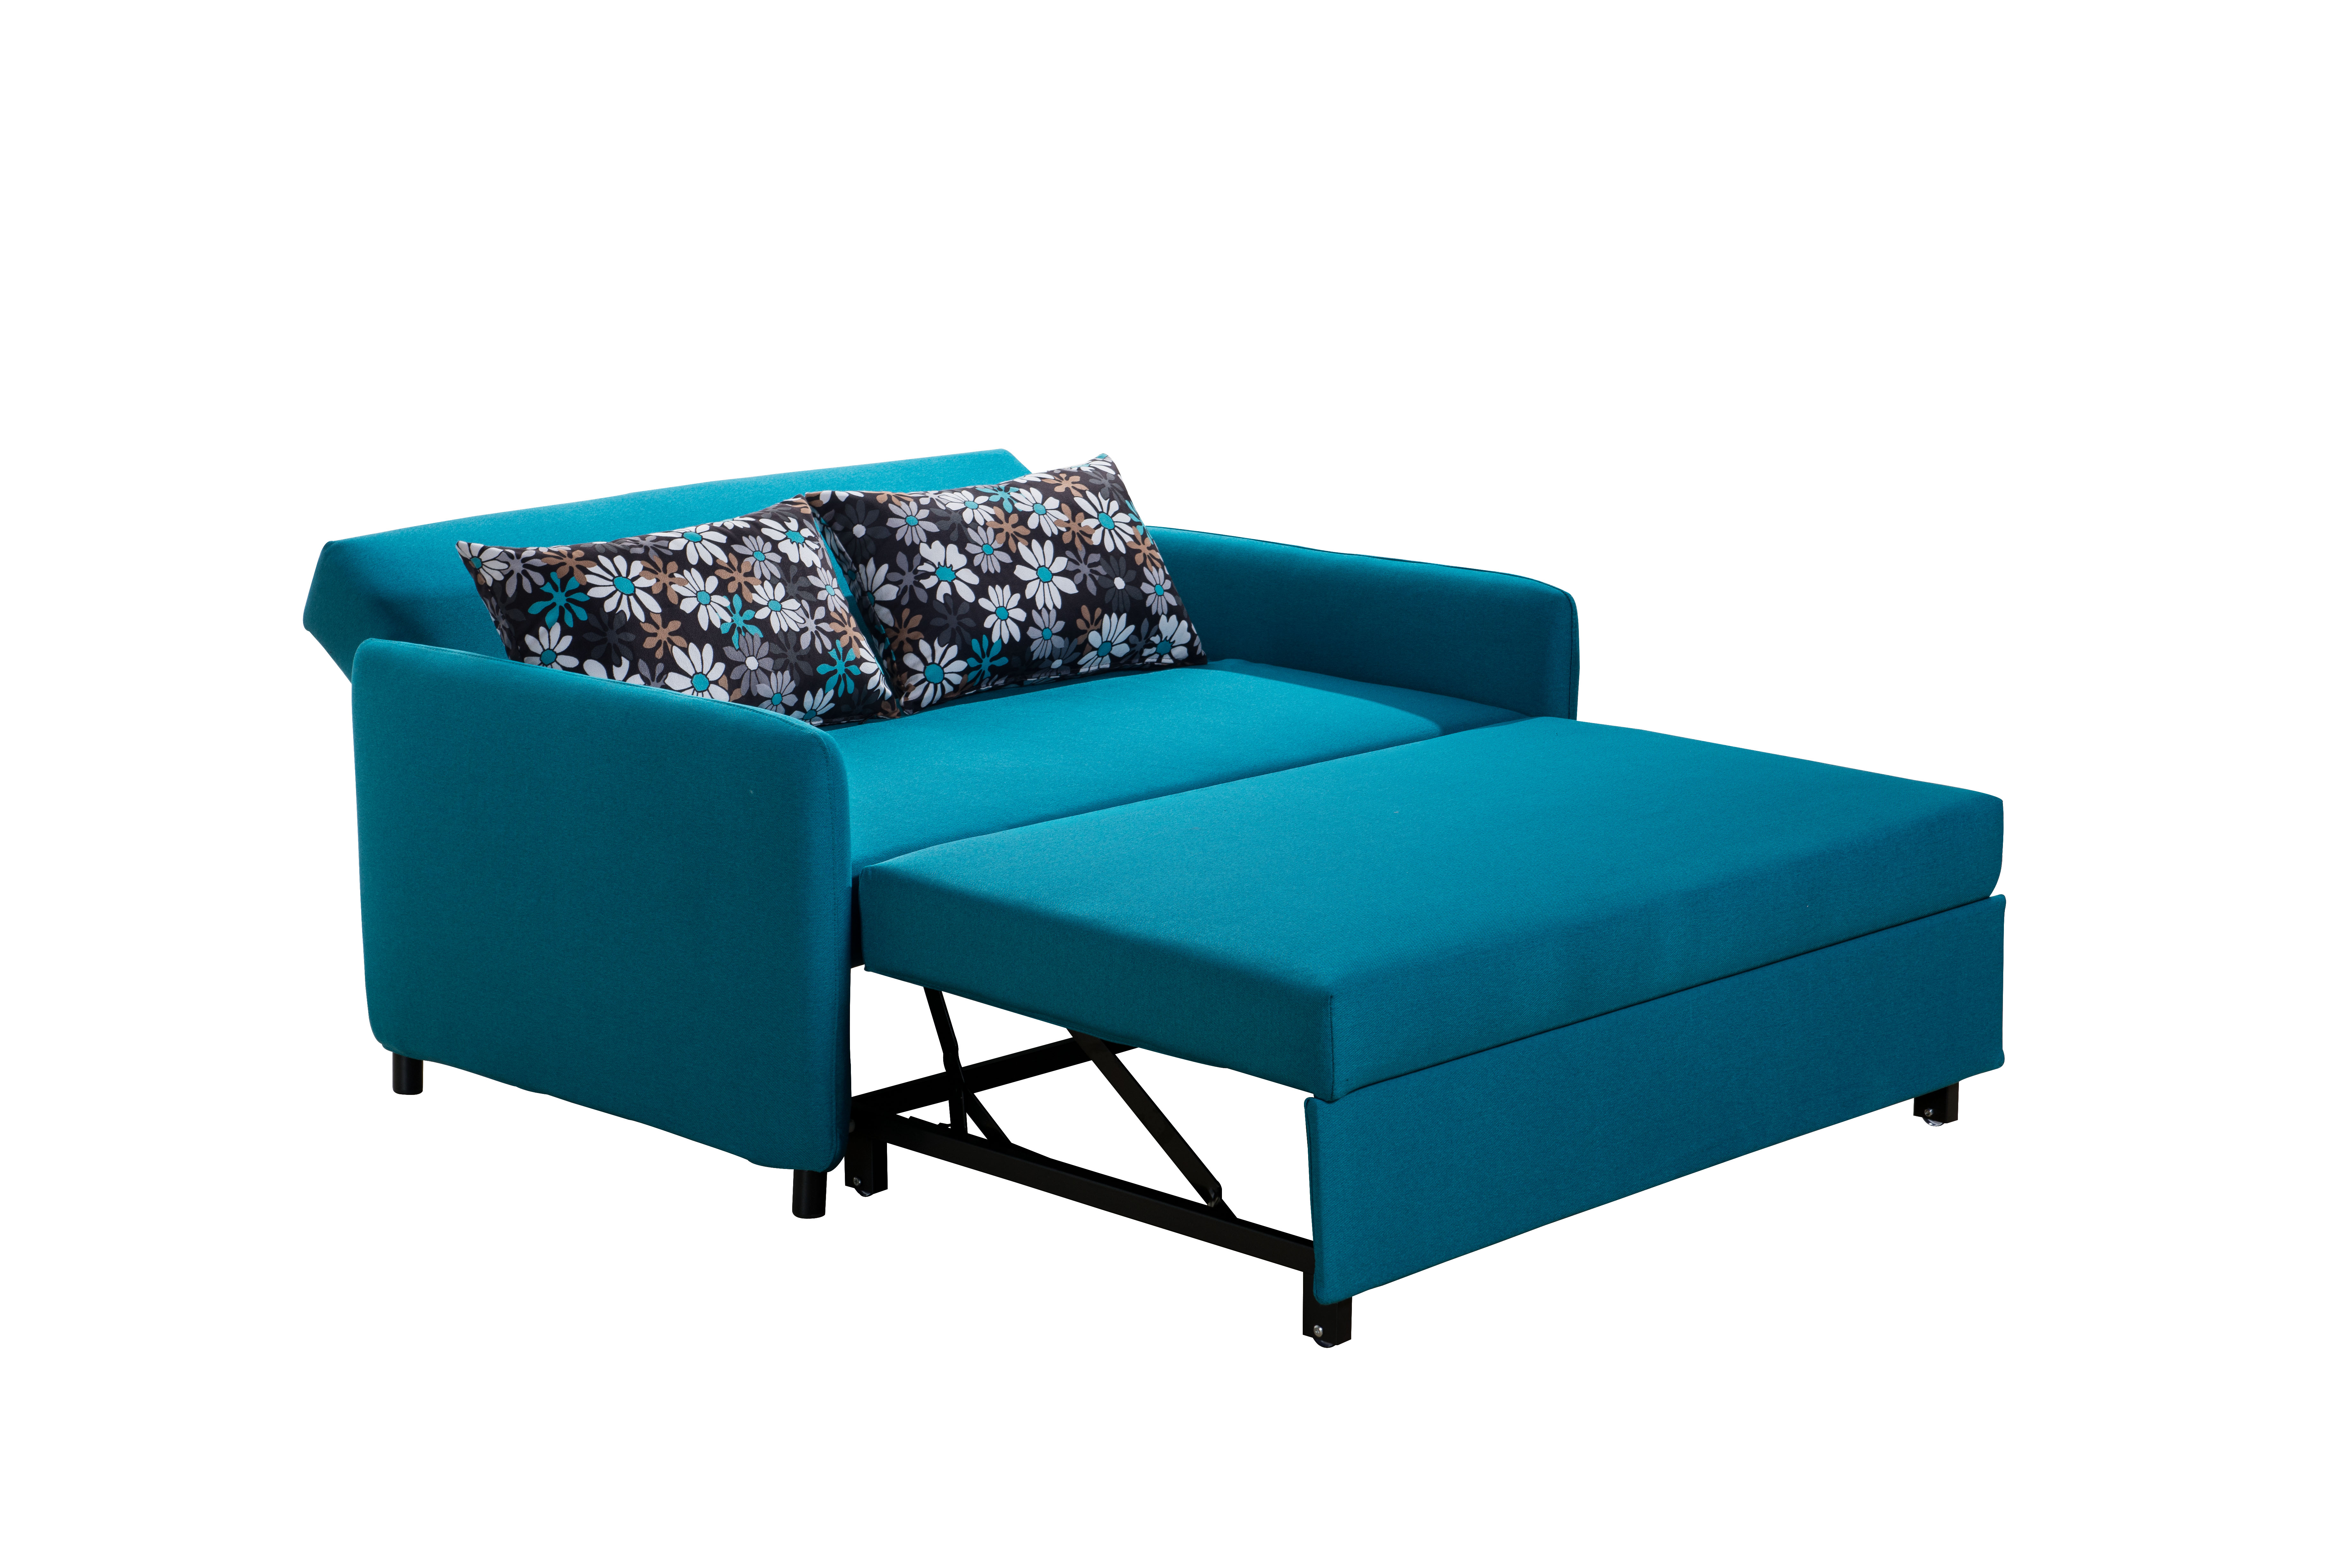 Sofa Beds And Sectional Sofa Beds Check out our selection below